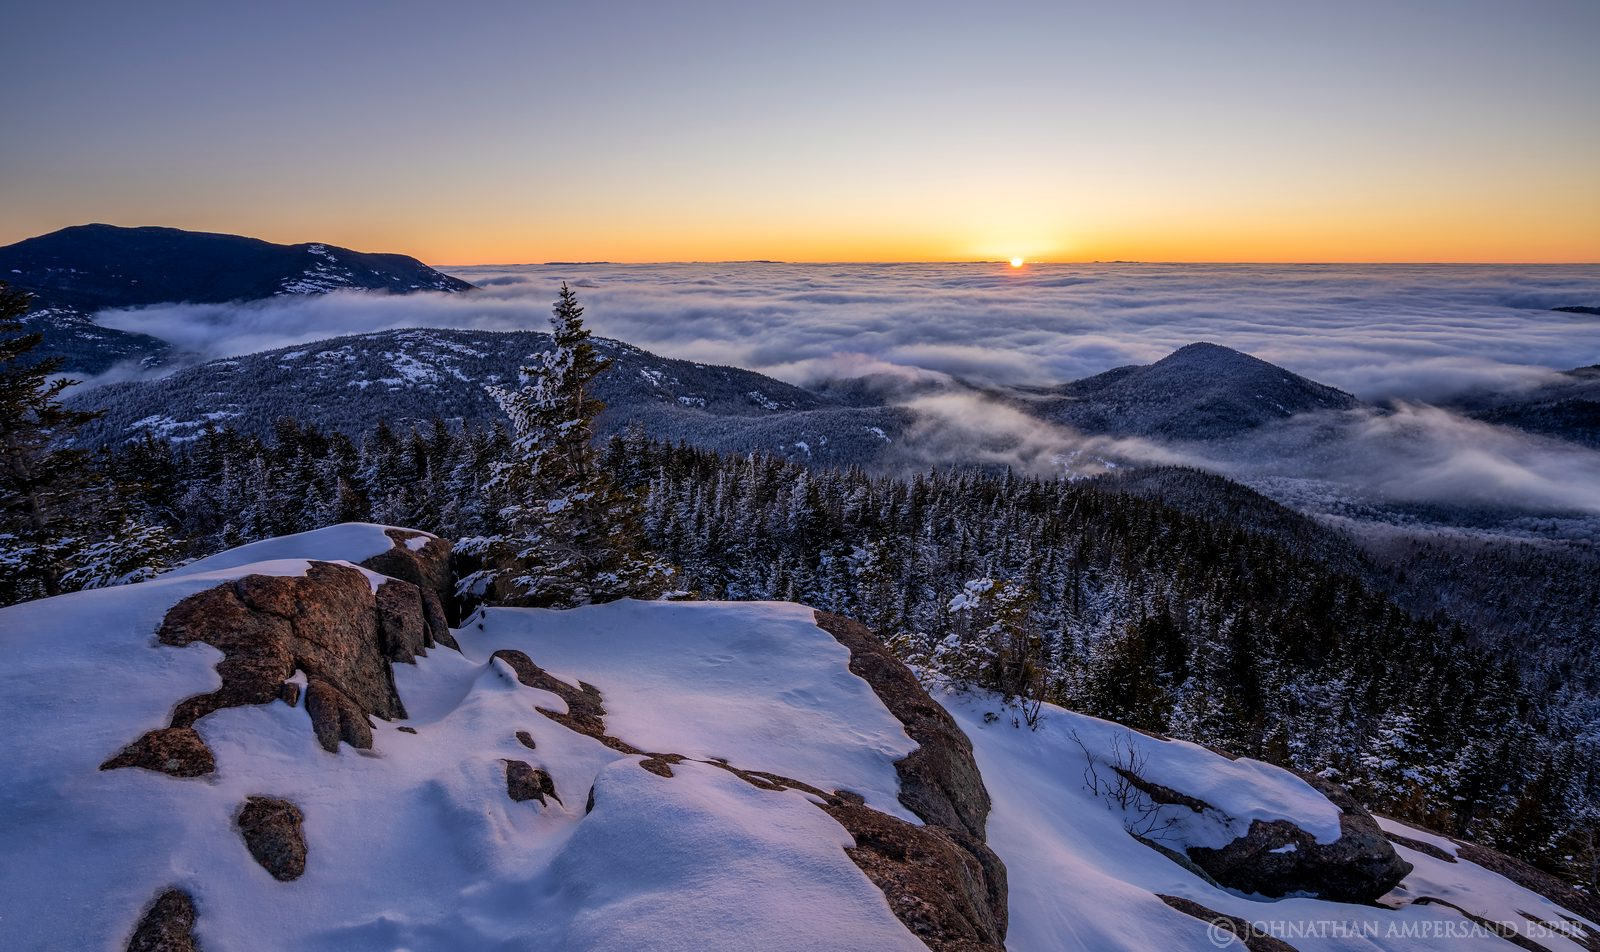 Noonmark,Noonmark Mt,above the clouds,cloud inversion,fog,winter,2021,summit,dawn,